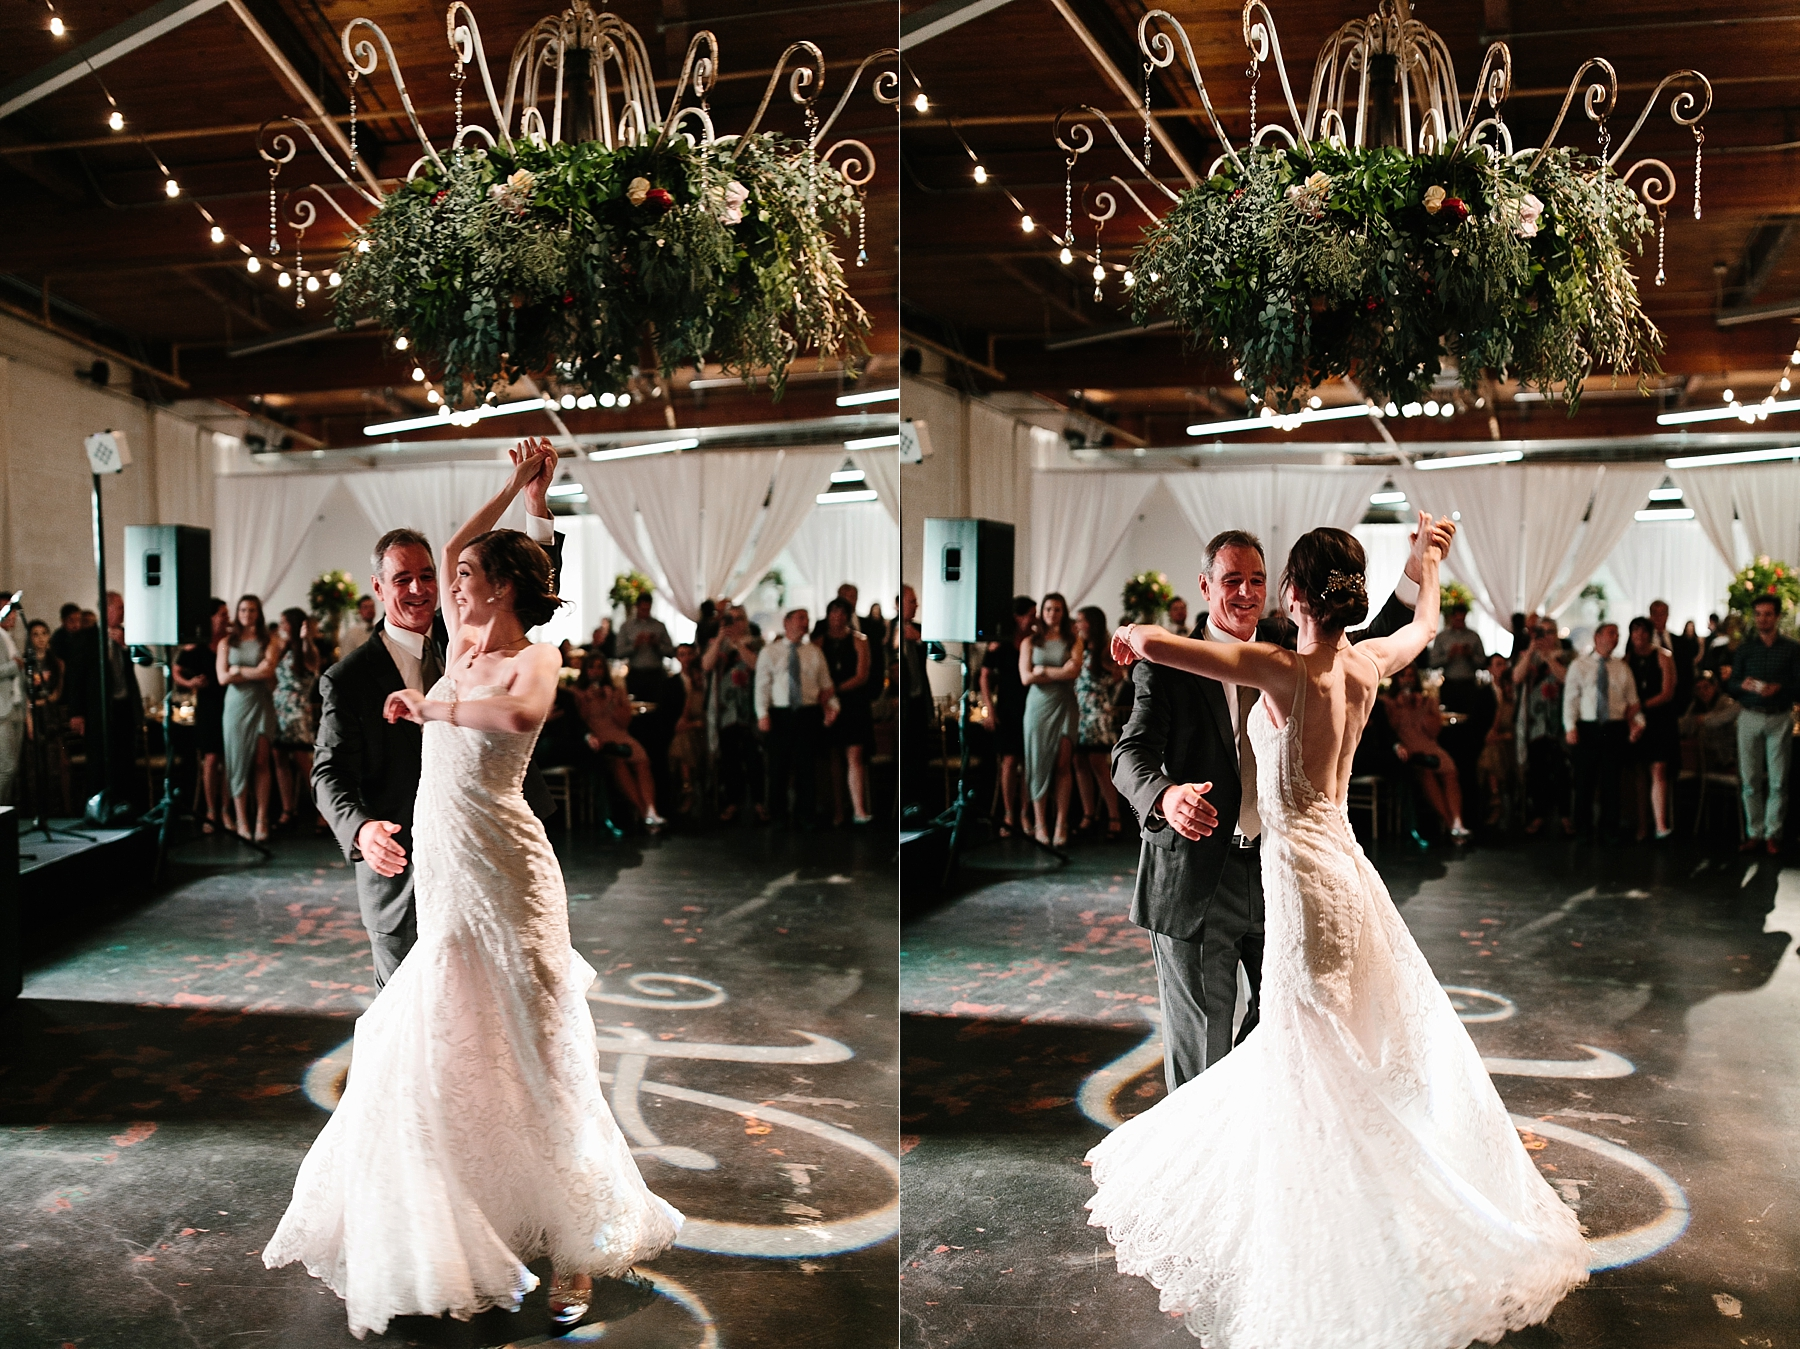 Emily + Caleb _ an elegant, intentional, industrial style wedding with navy + gold accents at 6500 in Dallas, TX by North Texas Wedding Photographer Rachel Meagan Photography _ 149